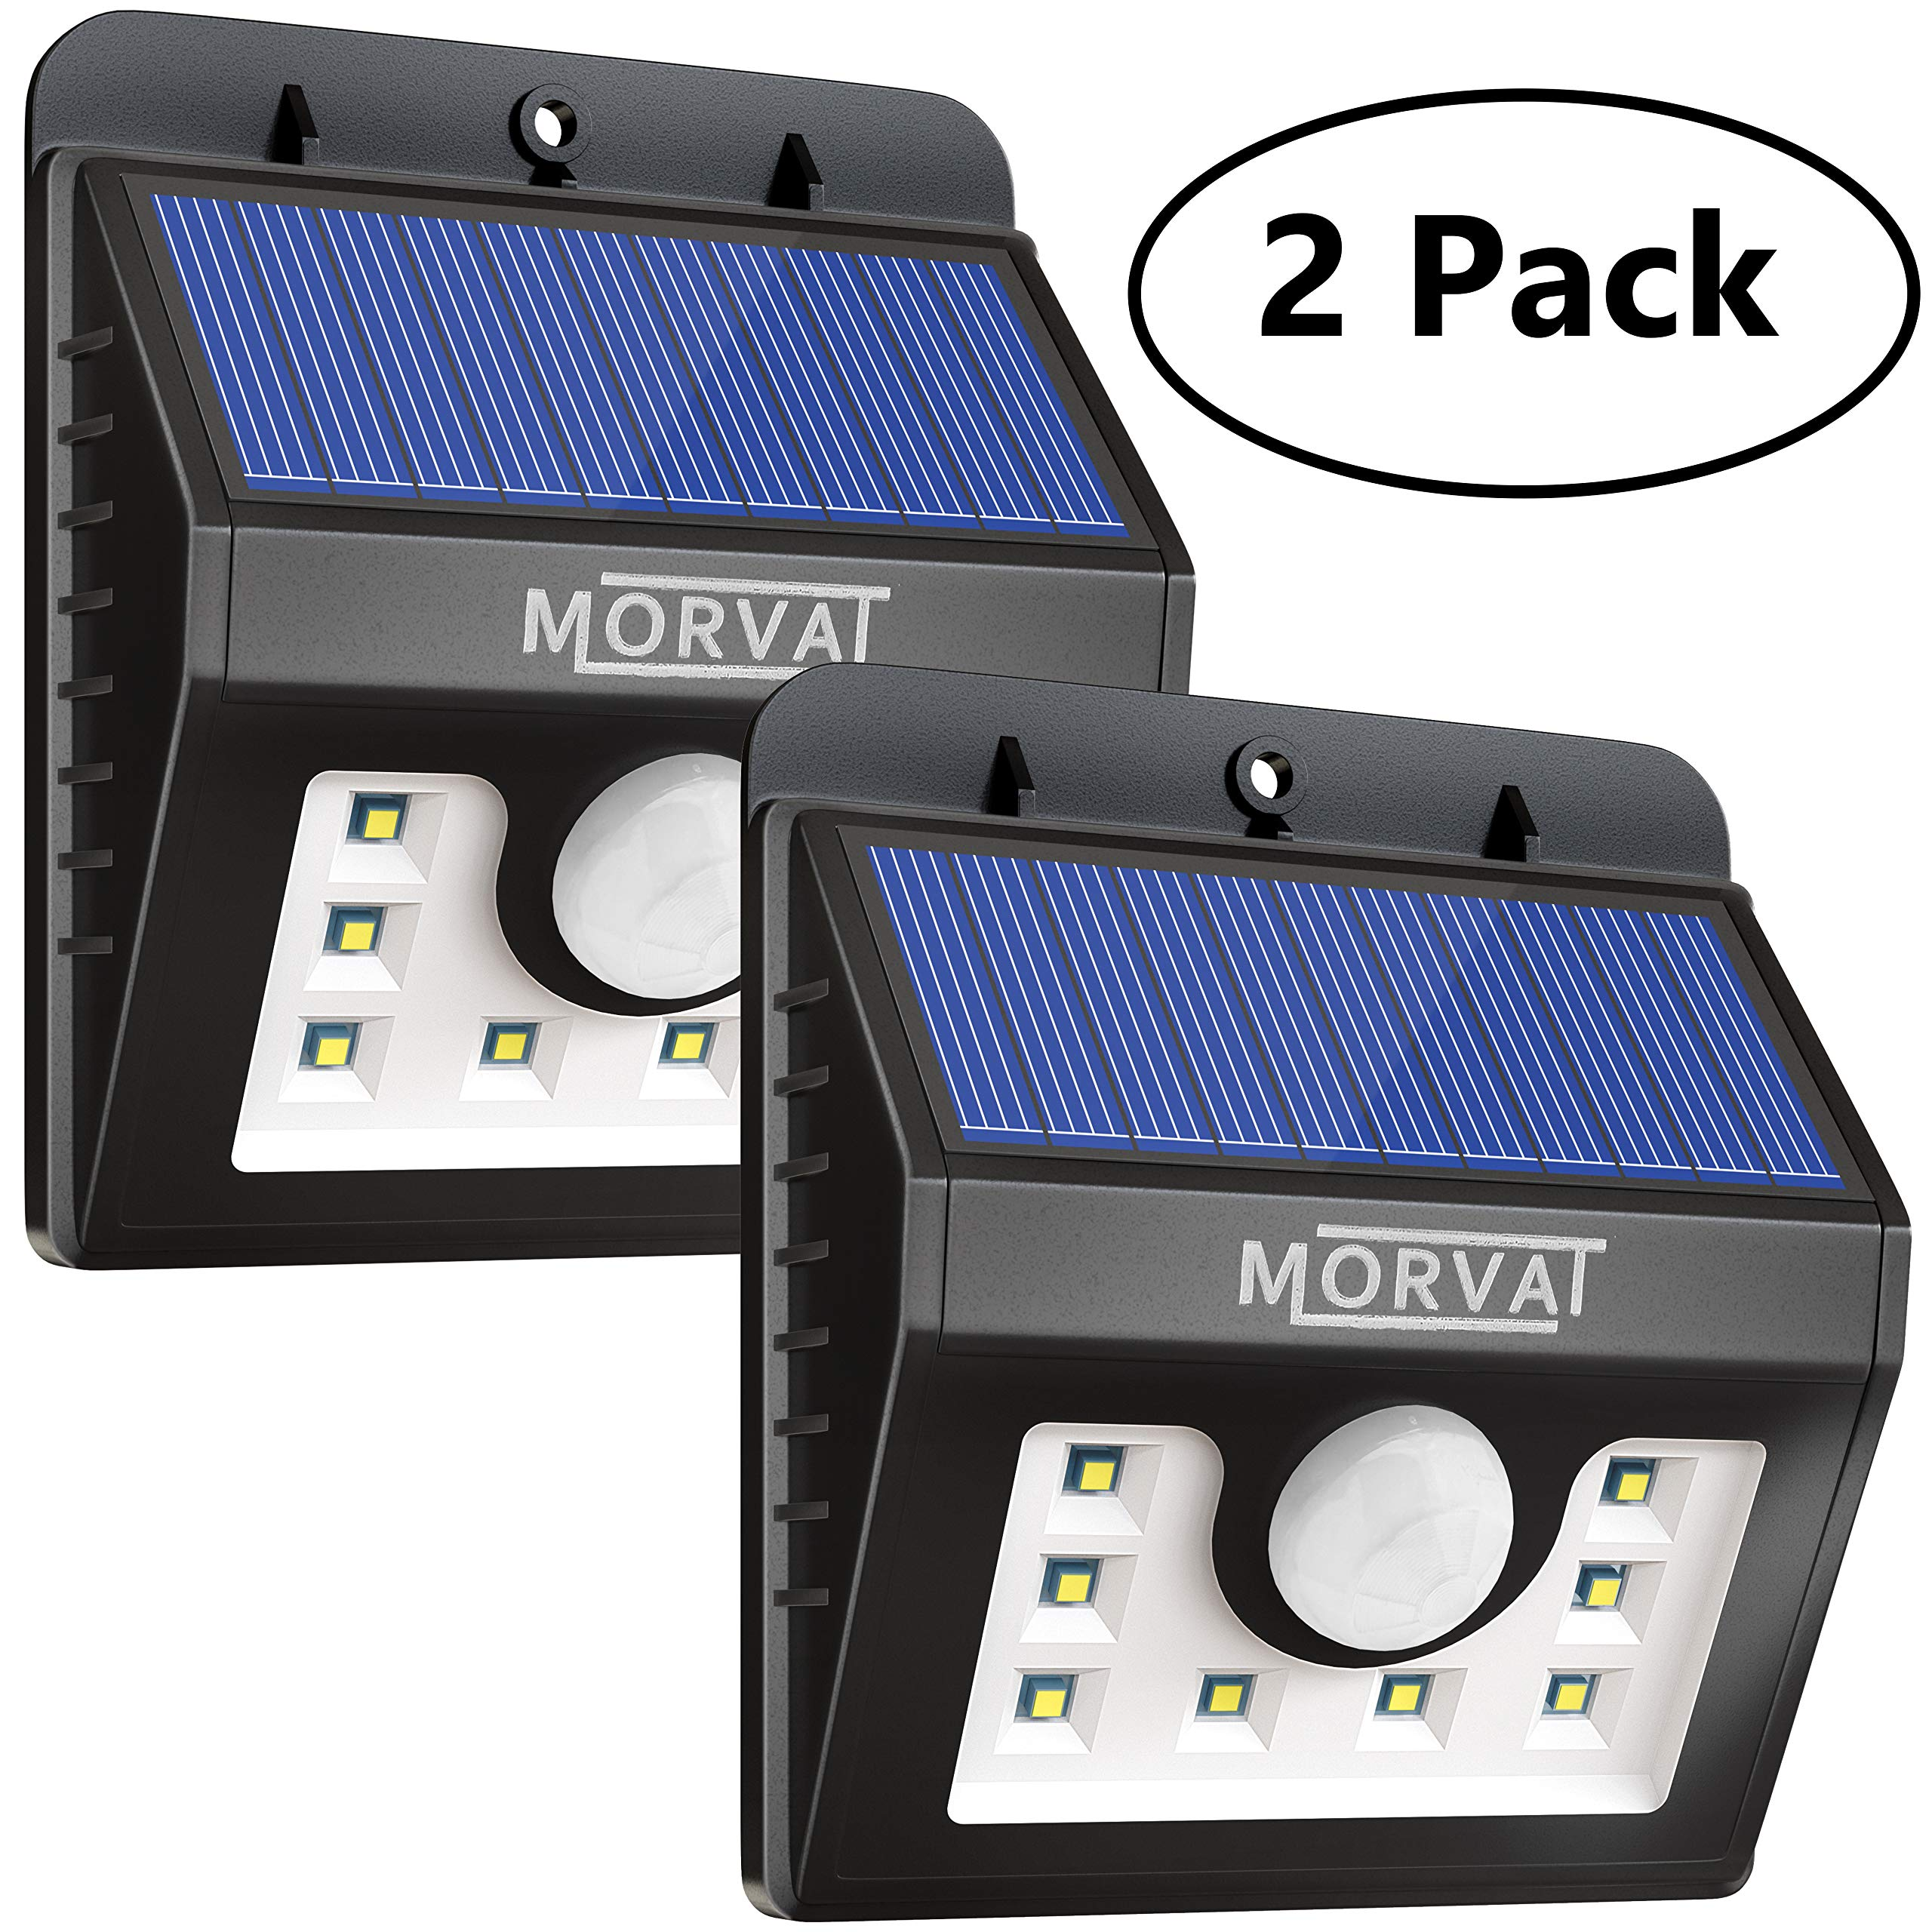 Upgraded Morvat Outdoor Solar Powered Motion Sensor Flood Light - 8 Super Bright LEDs   Waterproof, Wireless, Wide Angle Illumination - Security Lighting for Outdoor Areas: Driveway, Yard, 2 Pack